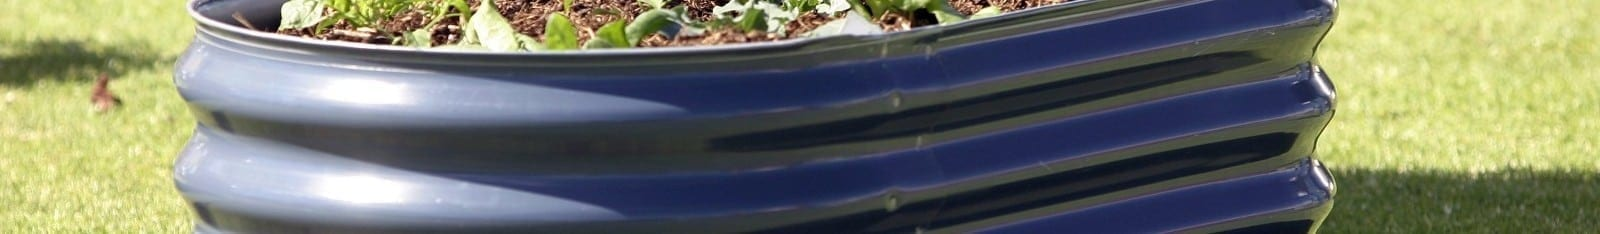 Using Rainwater Tanks and Other Tips for Gardens with Edible Plants